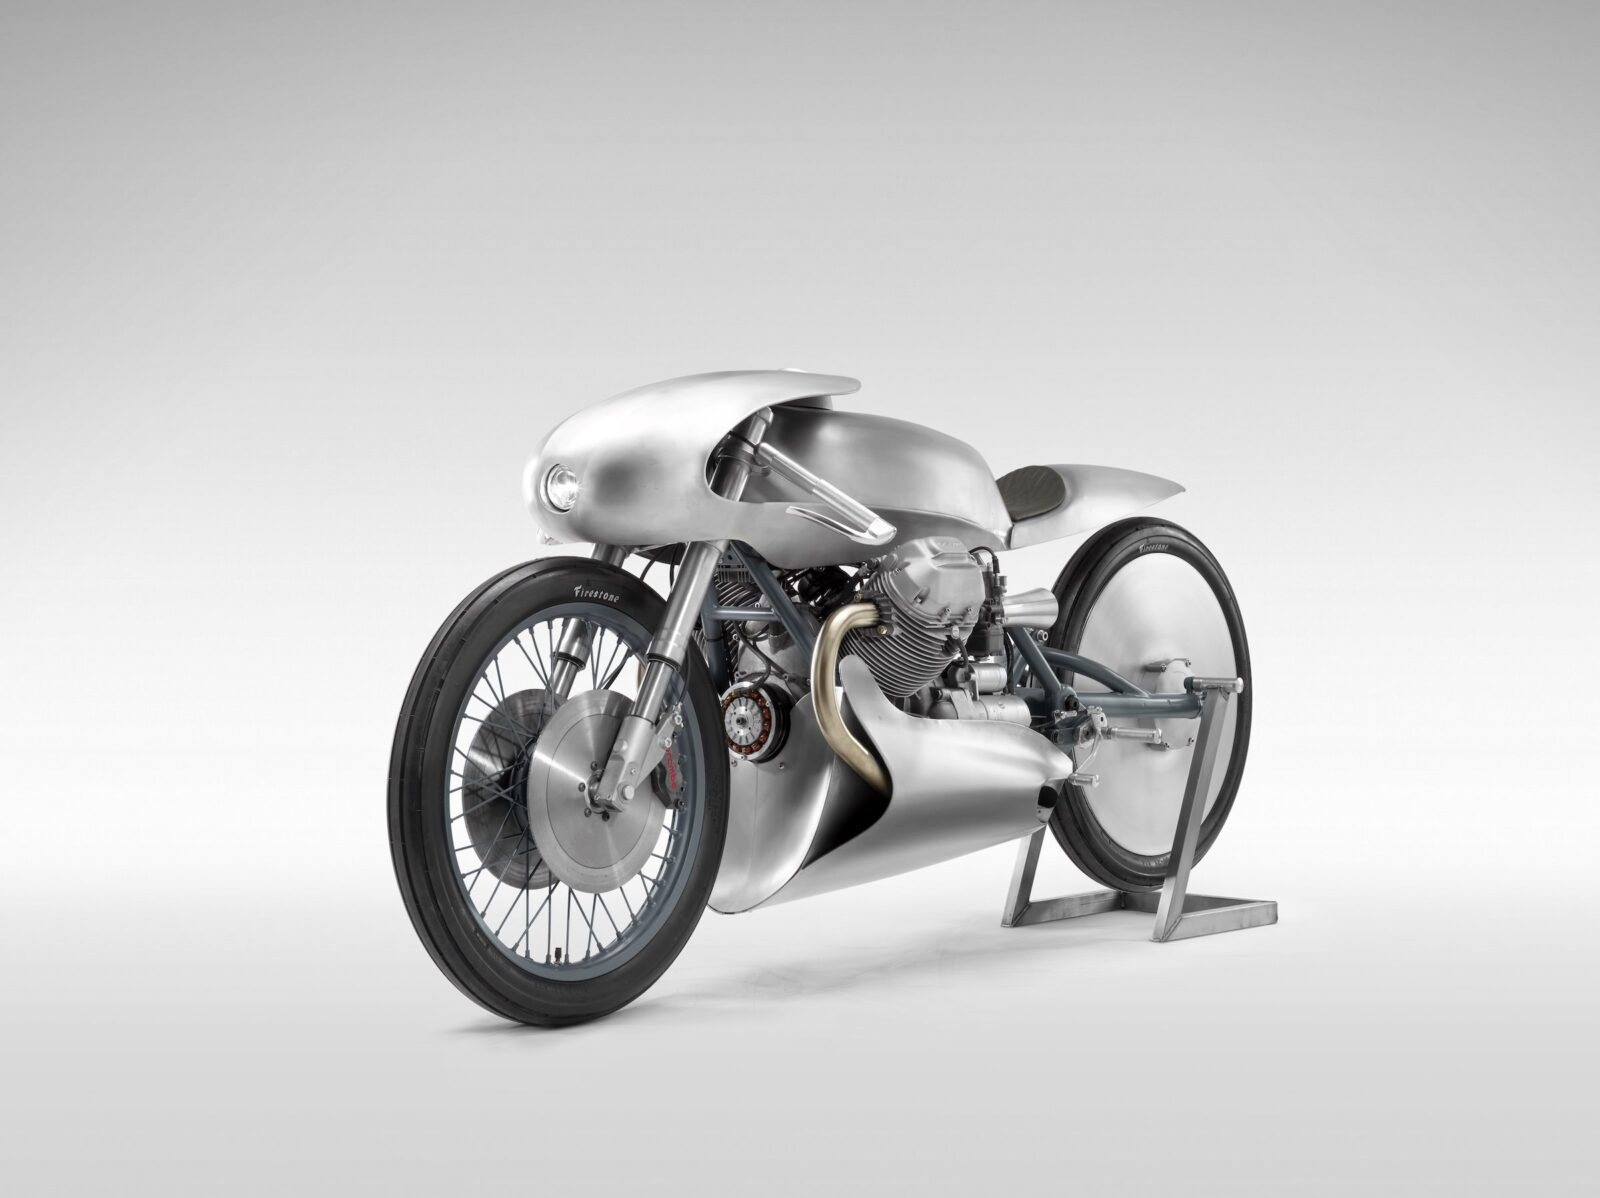 Death Machines of London Airforce Moto Guzzi Custom Motorcycle 1600x1198 - Death Machines of London Airforce Moto Guzzi